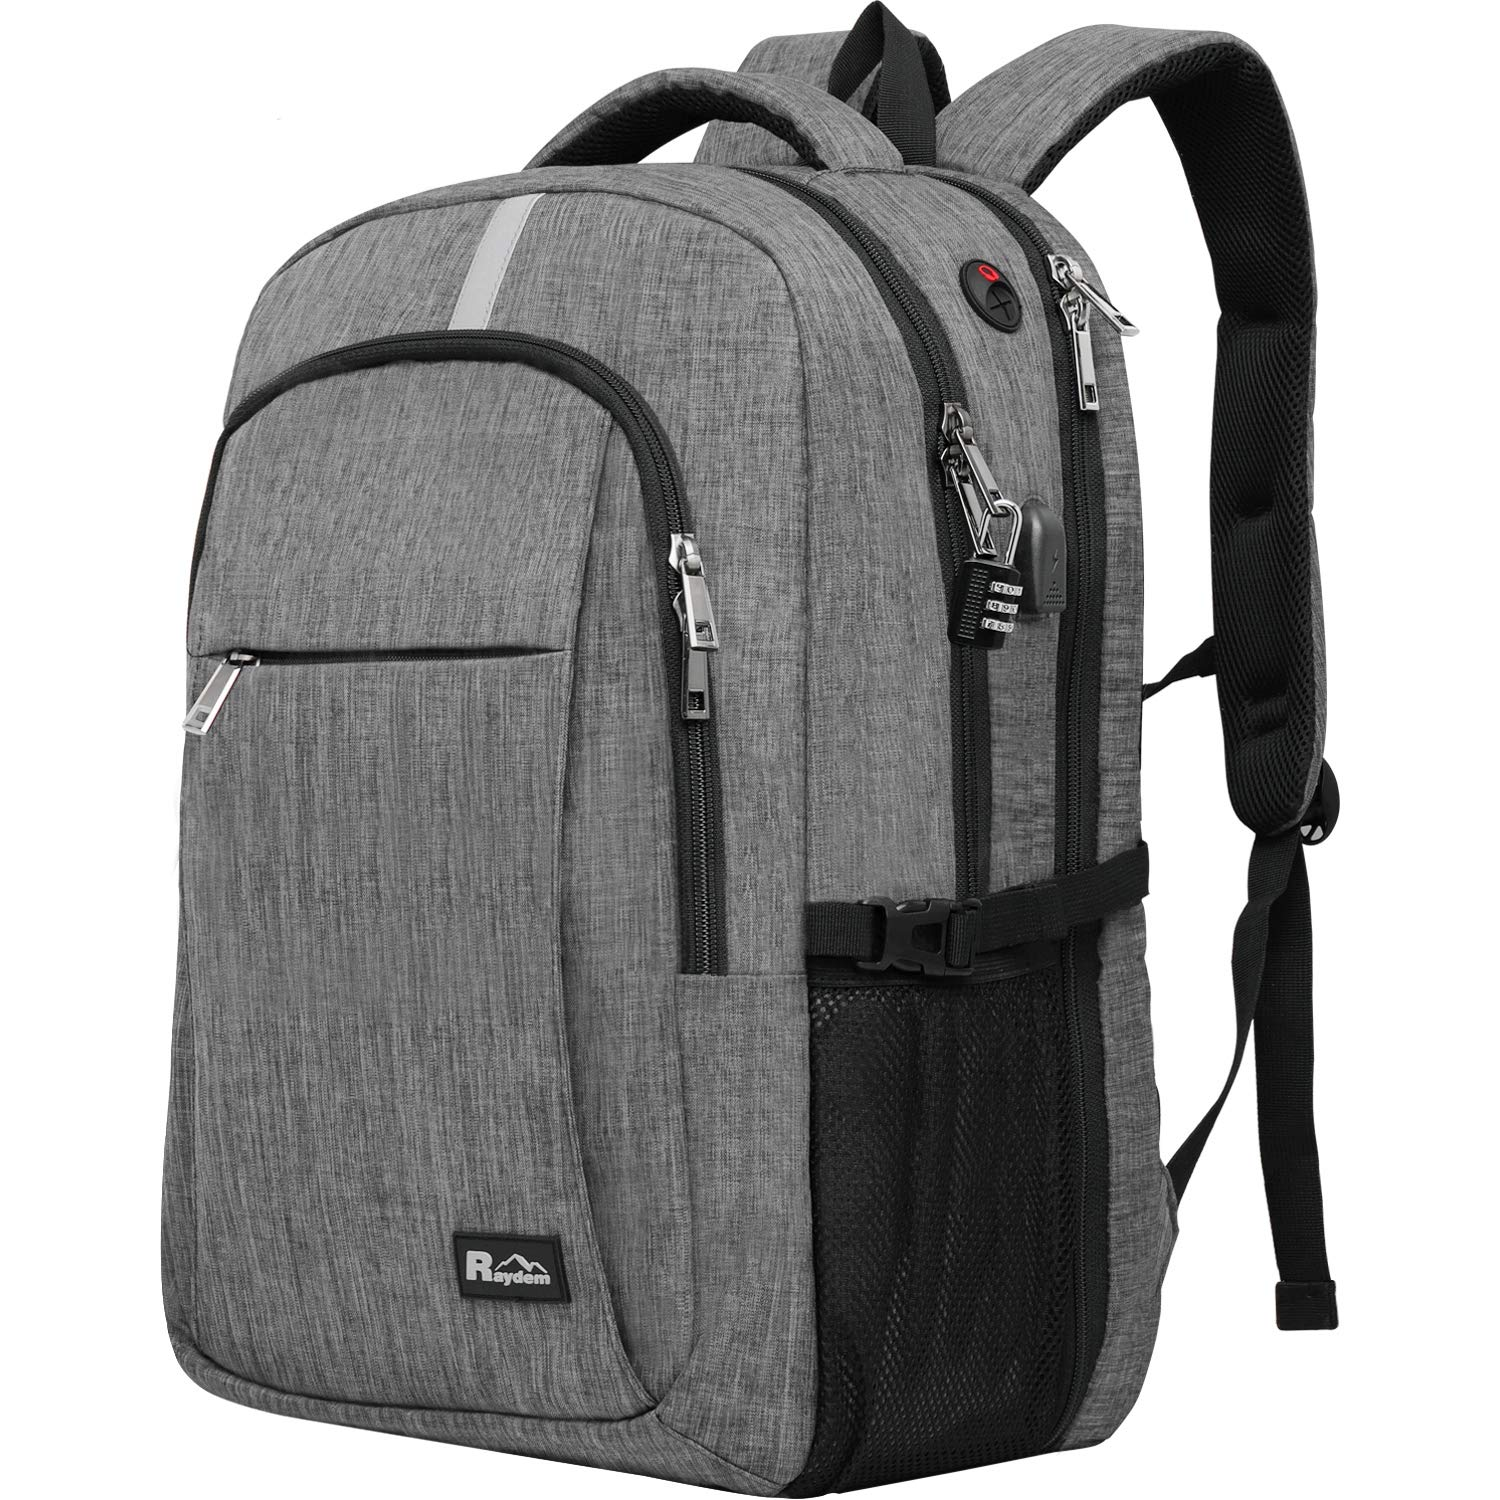 Travel Laptop Backpack with USB Charging Port, Raydem 17.3 Inch Water Resistant School Backpack Business Laptop Bag, TSA Friendly Computer Backpack Anti Theft Carry on Bookbags for Women Men, Grey by Raydem